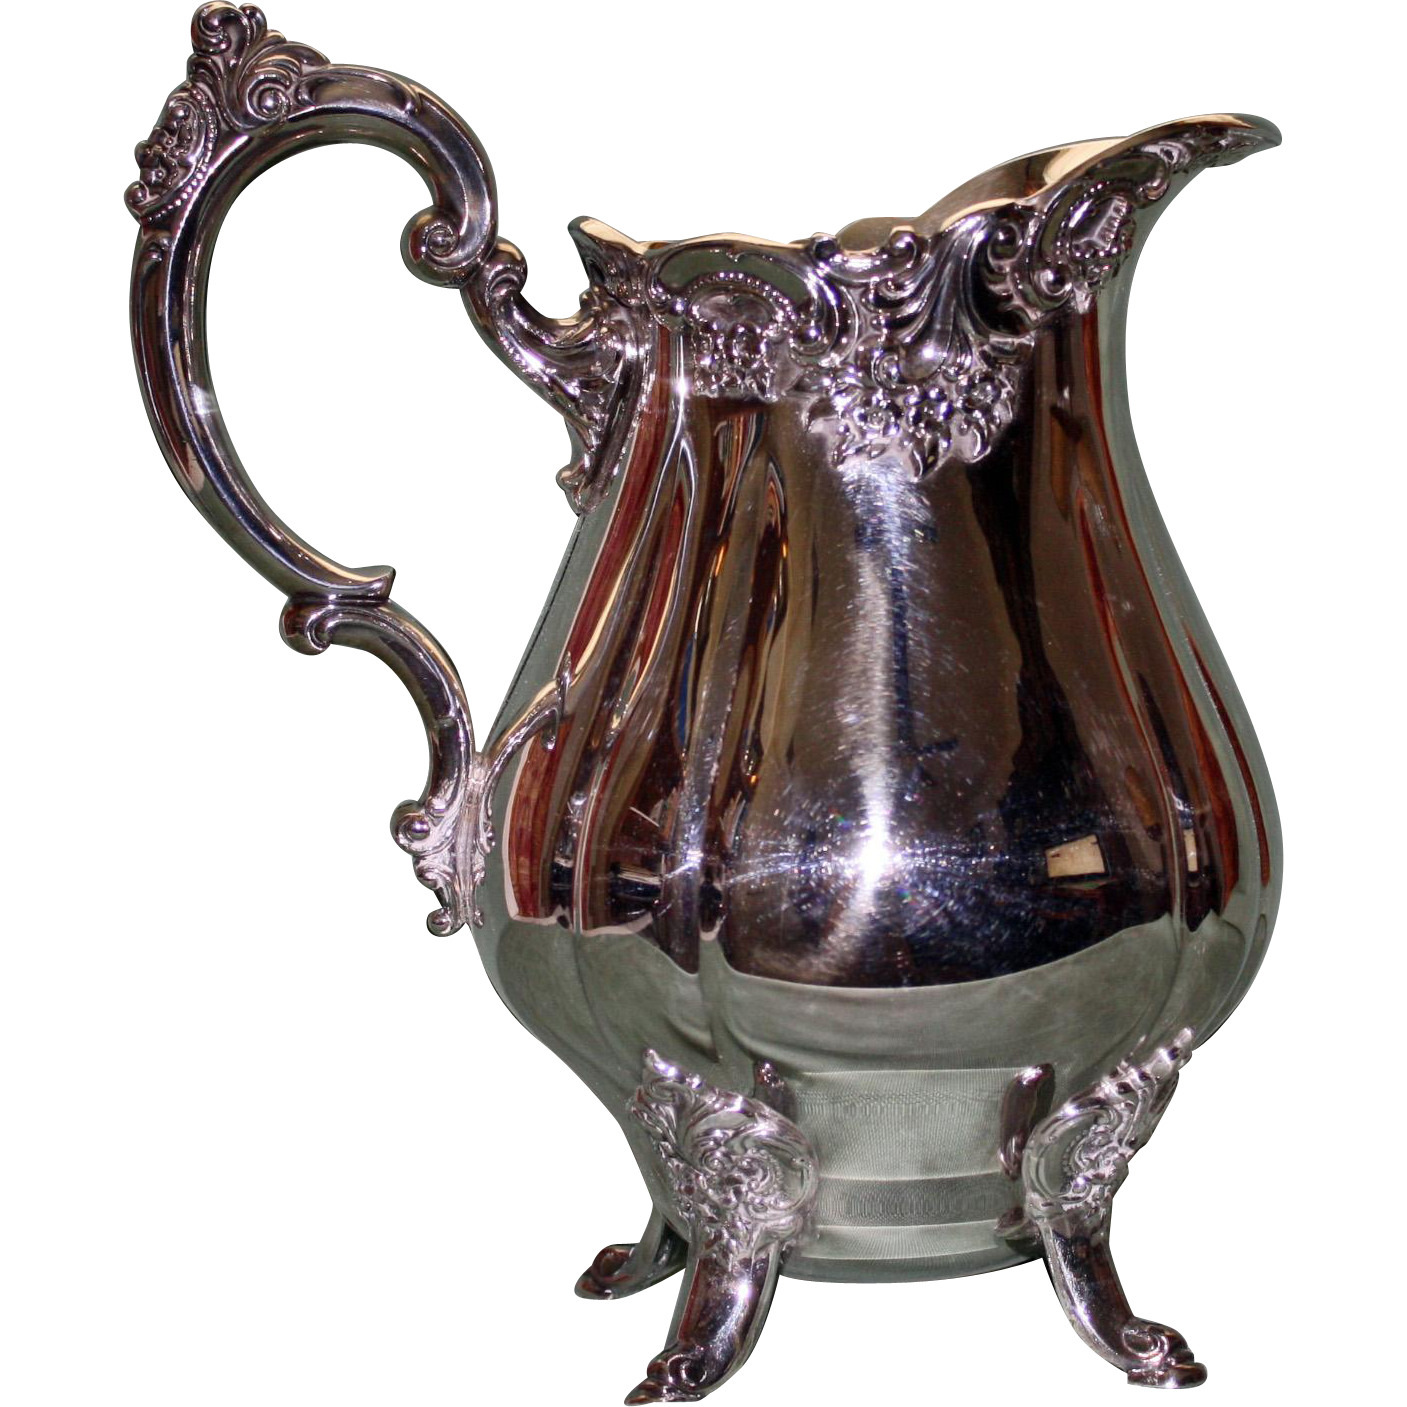 Baroque Pitcher By Wallace 267 Outstanding Condition Baroque Pitcher Items